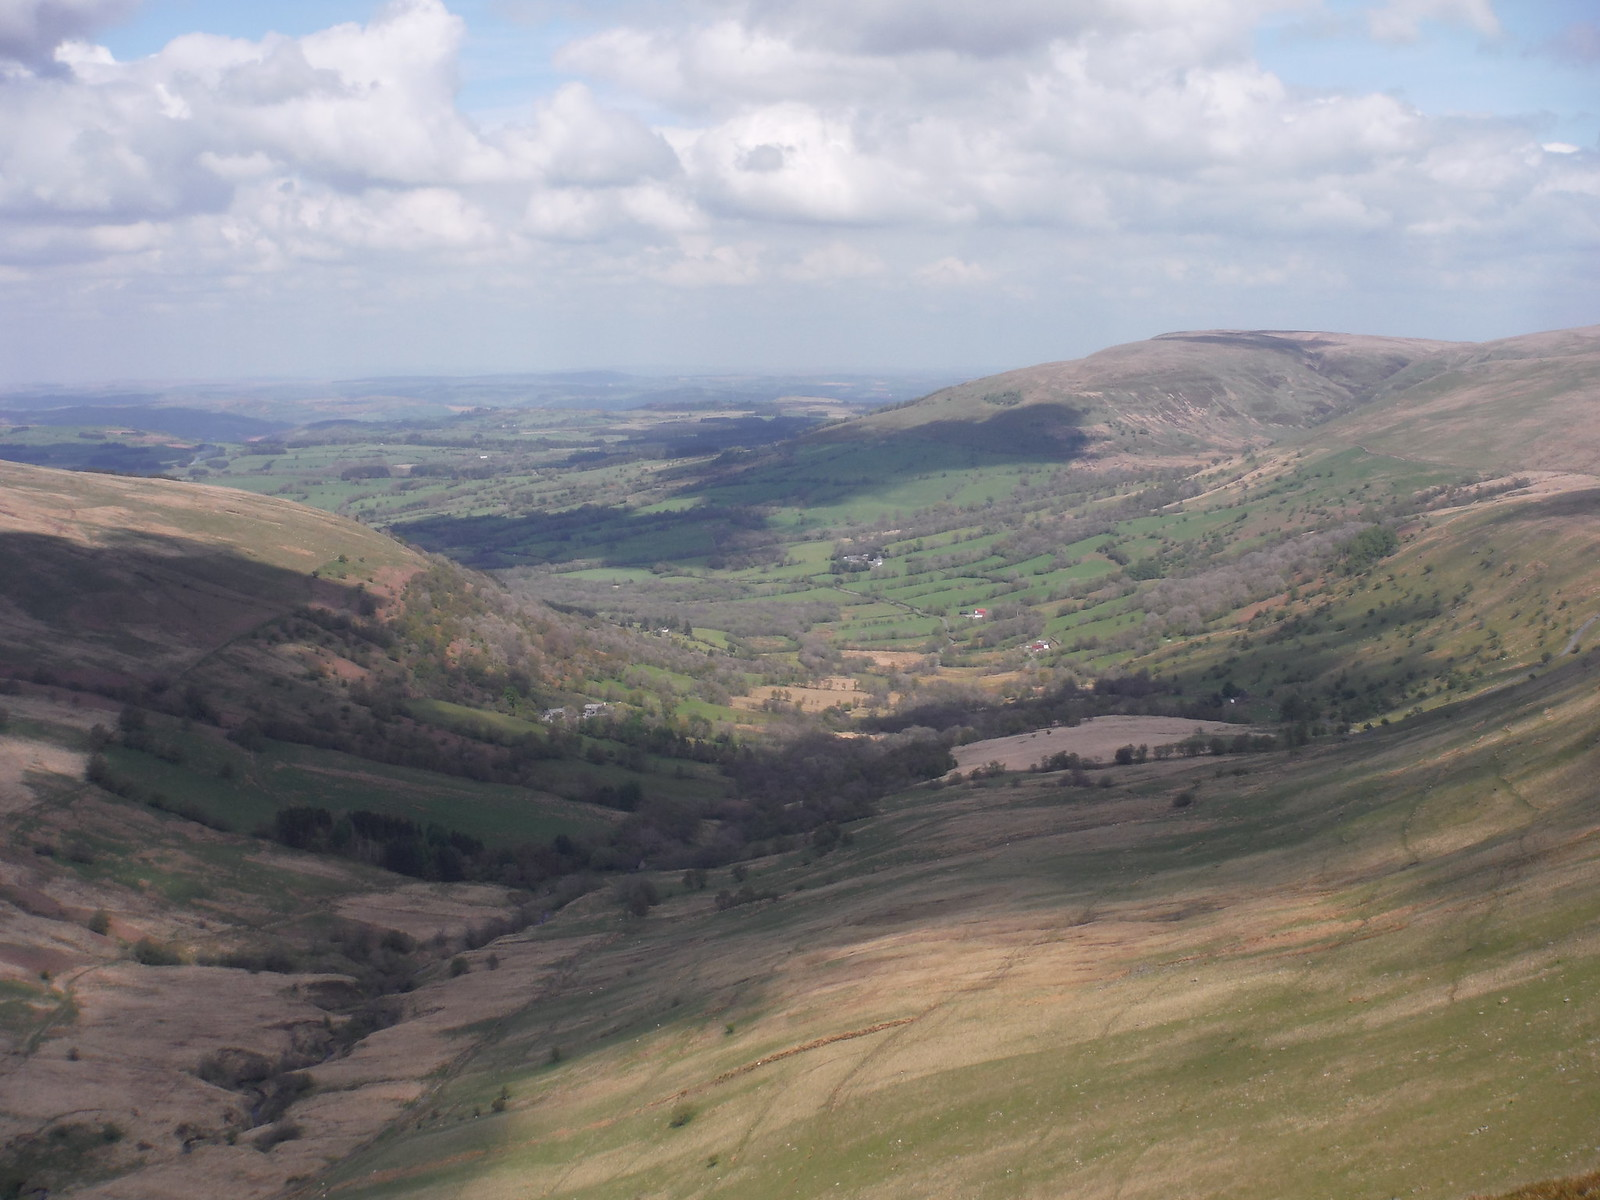 View from Fan Nedd Ascent SWC Walk 307 - Fforest Fawr Traverse (Craig y Nos to Llwyn-y-celyn)